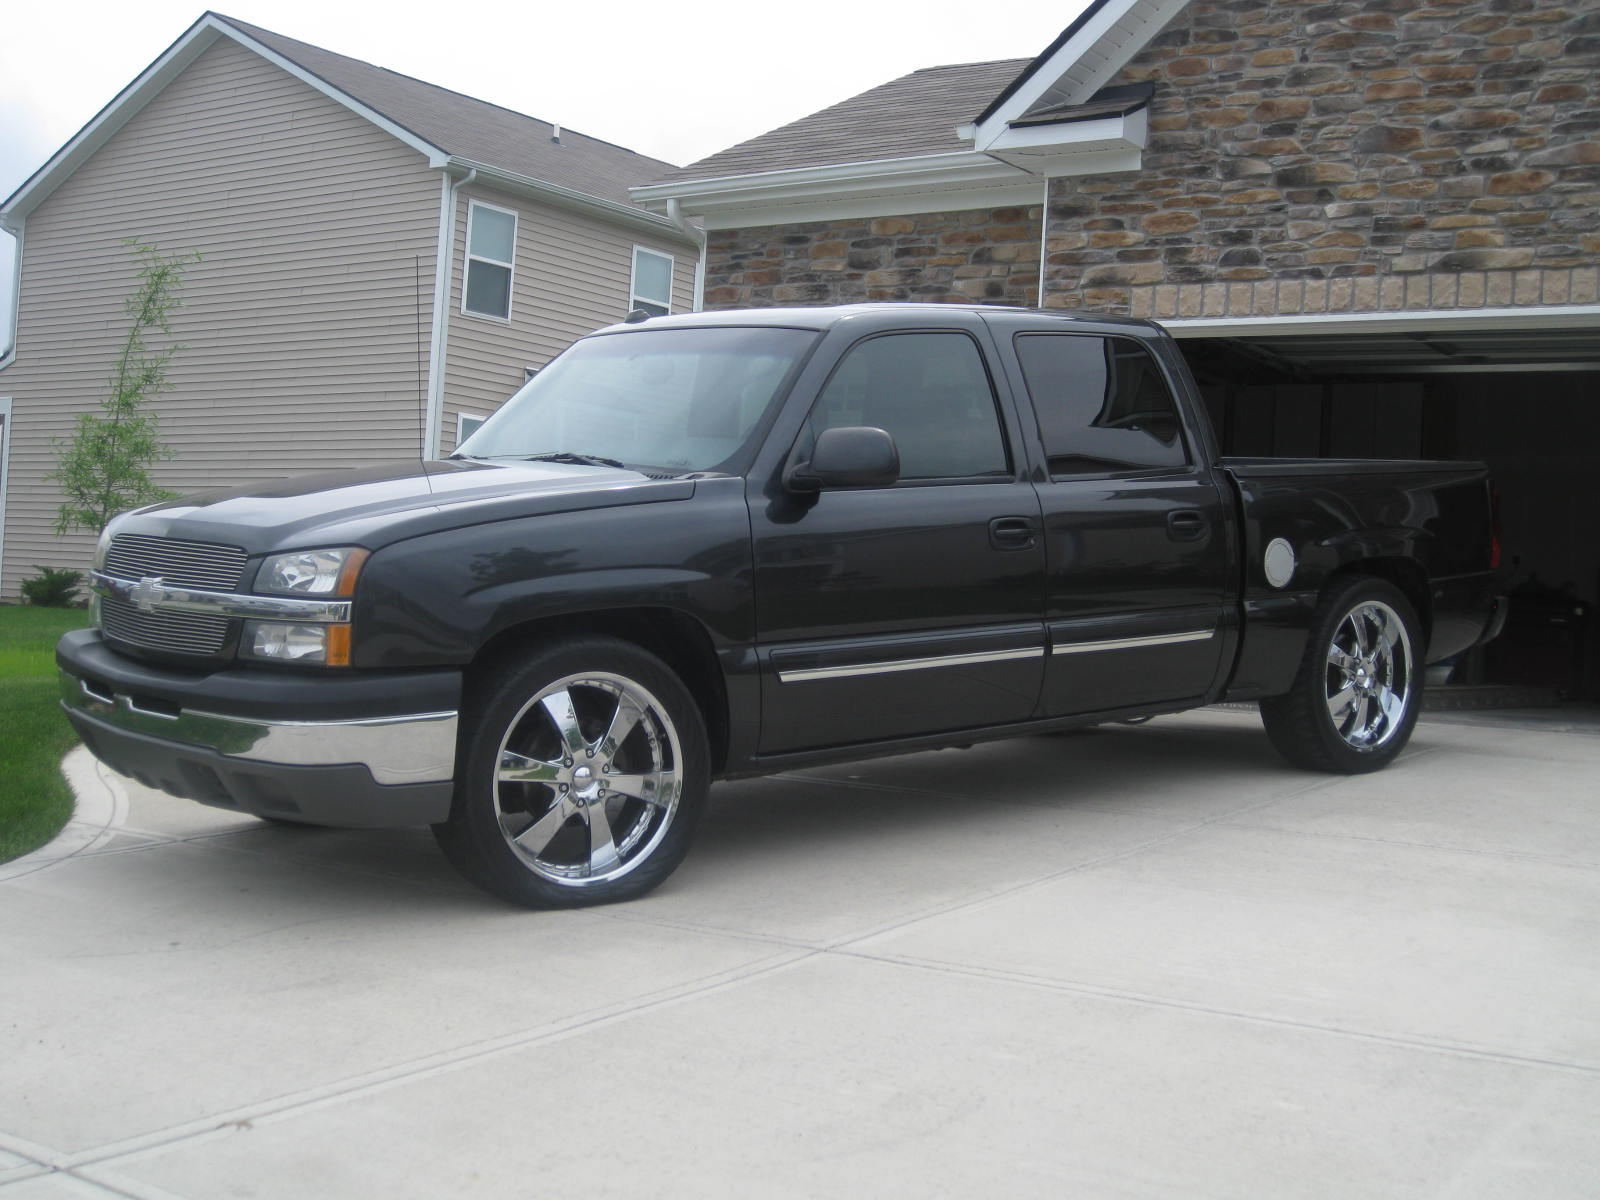 picture of 2004 chevrolet silverado 1500 ls crew cab 2wd exterior. Cars Review. Best American Auto & Cars Review